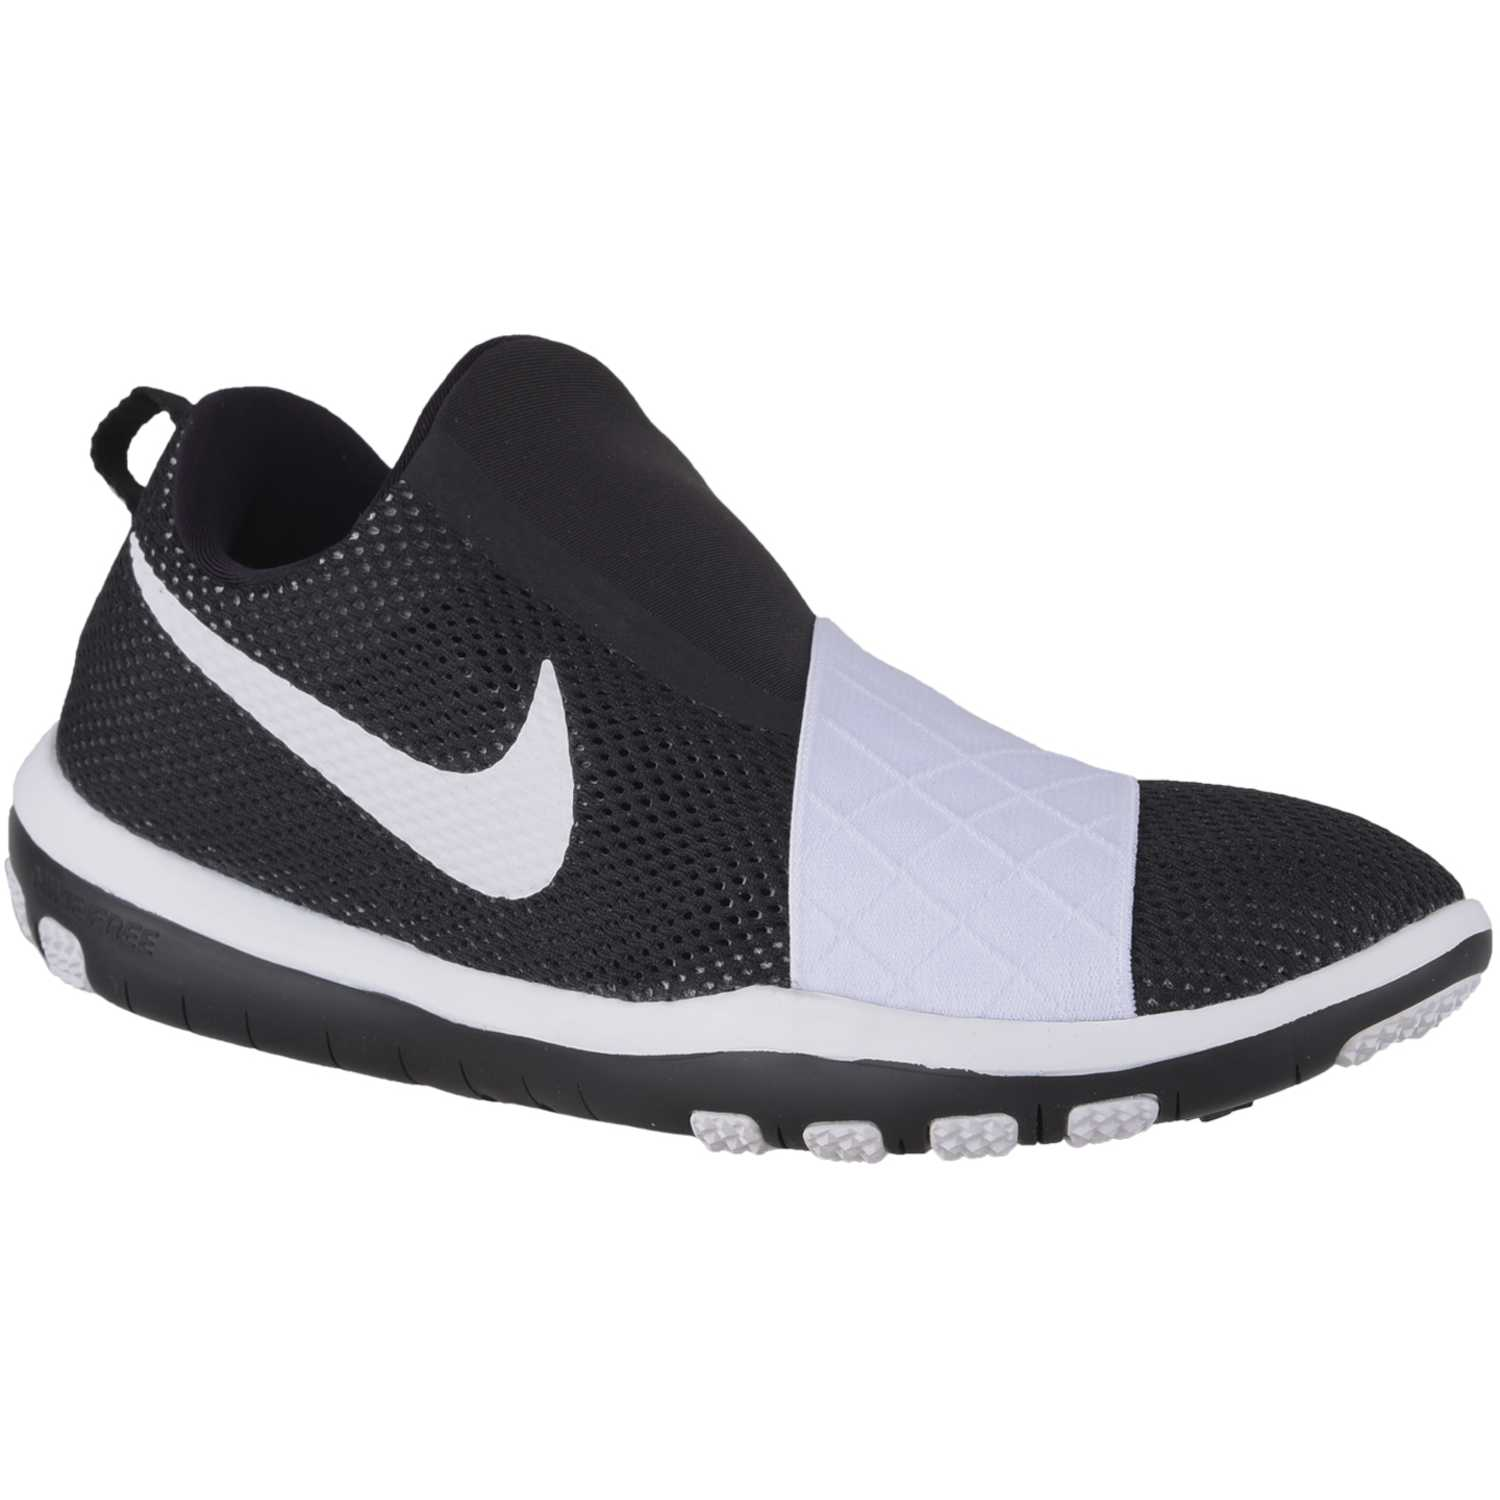 best authentic 5baff d4dff sweden zapatilla de mujer nike negro blanco wmns free connect 20da9 4b6ec